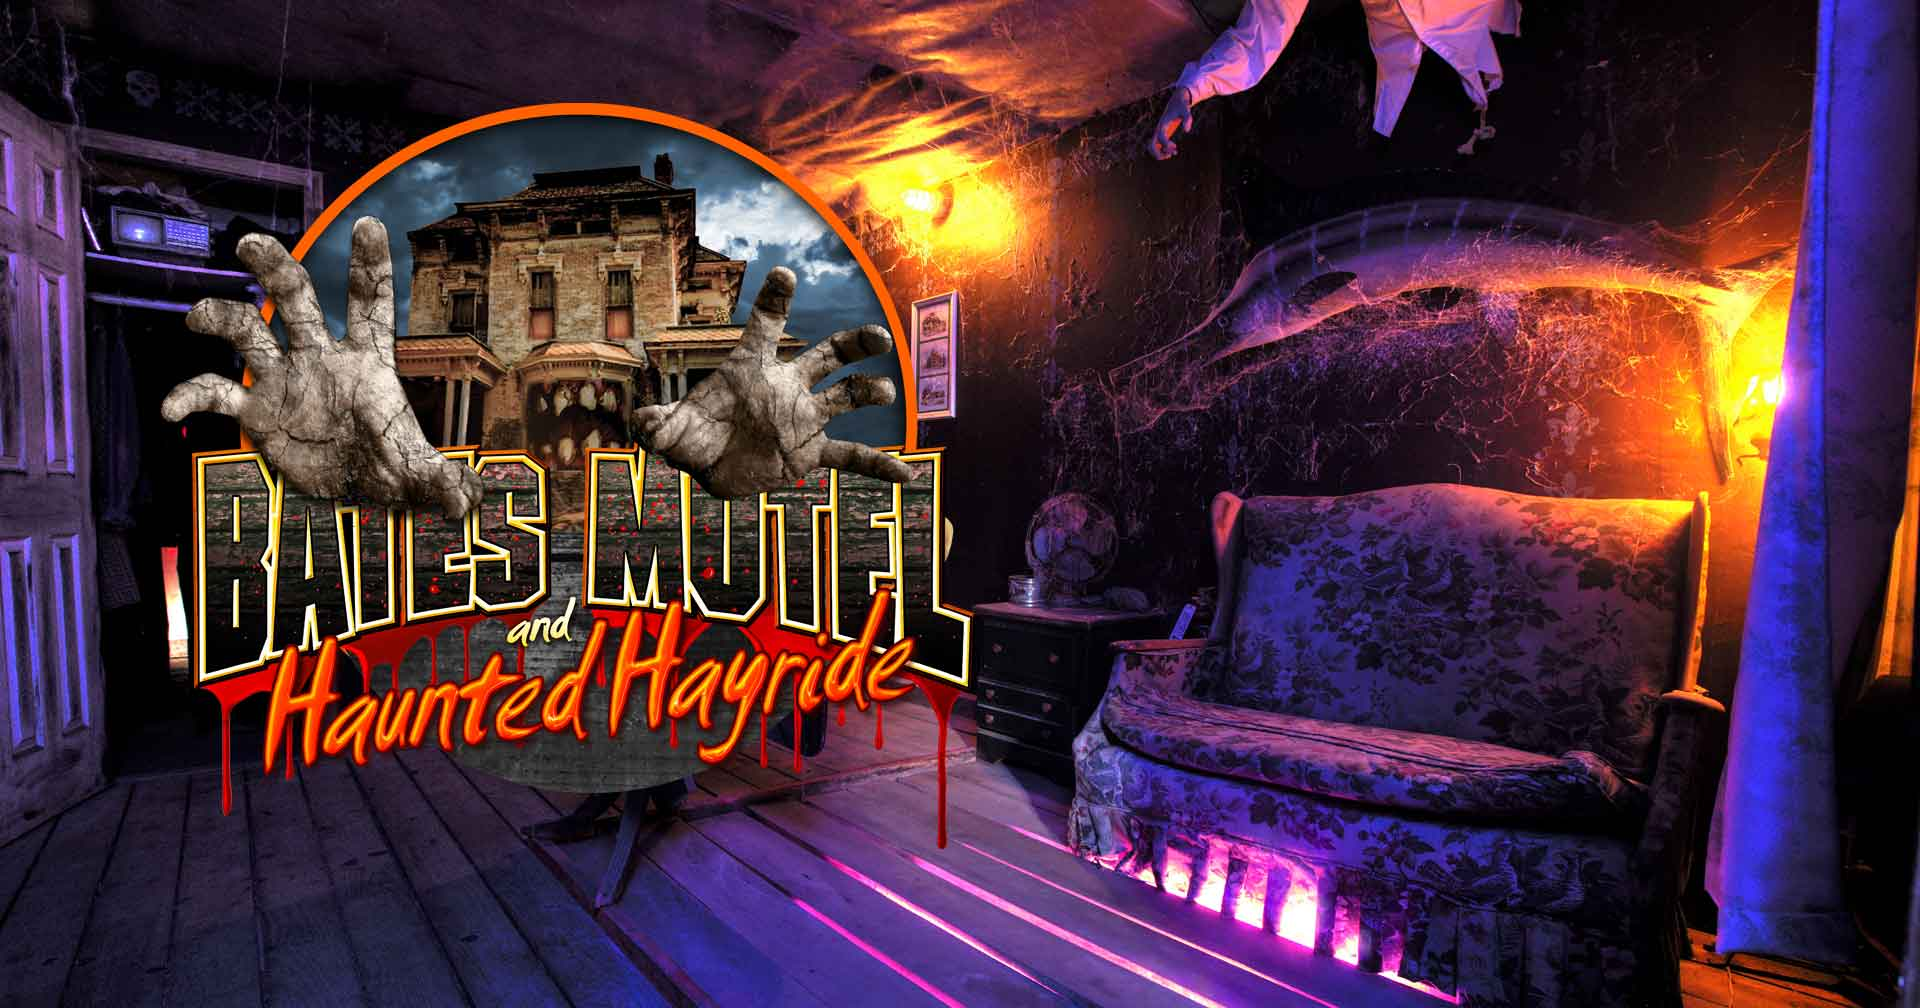 This Video Shows Why Nearby Bates Motel Is One of America's 10 Best Haunted House Attractions